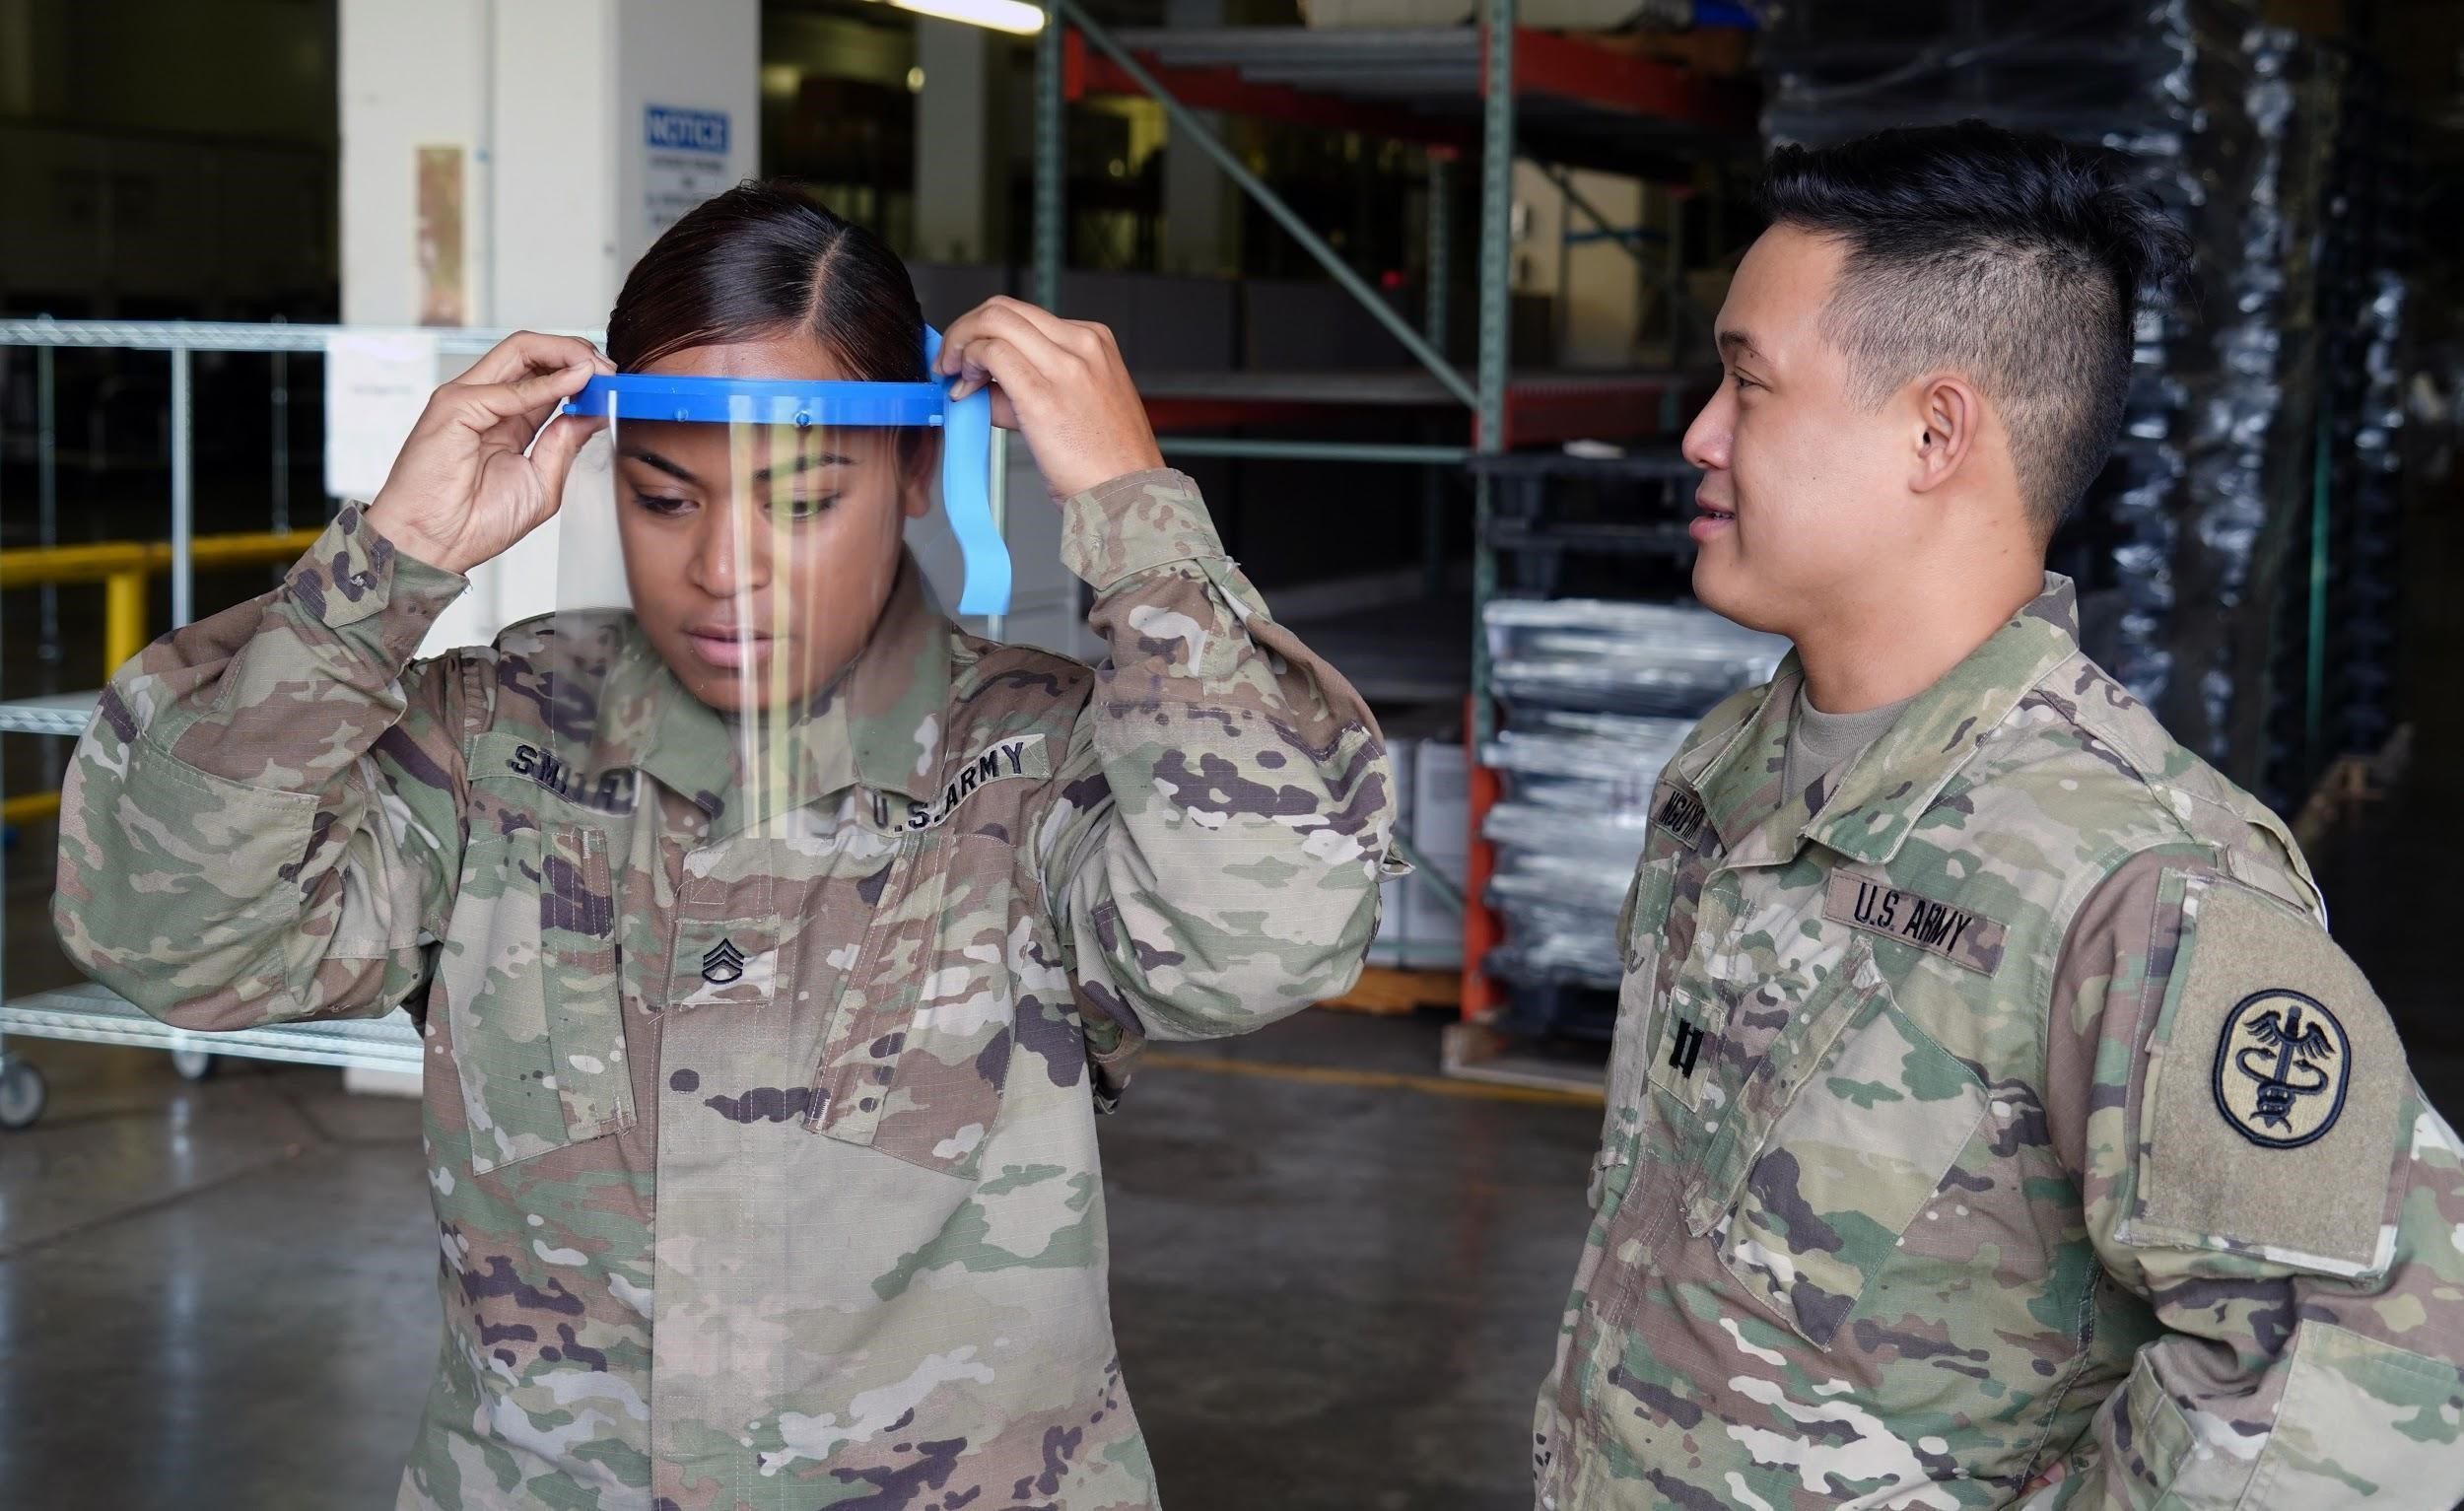 U.S. Army Staff Sgt. Jacklyn Smith, Tripler Army Medical Center medical warehouse non-commissioned officer in charge, receives assistance from U.S. Army Capt. Scott Nguyen, TAMC General Surgery resident physician, with adjusting her face shield at TAMC, Hawaii, April 3, 2020. Due to a shortage of disposable masks, the 15th Wing is using 3D printers to make face shields to donate across the island to combat the COVID-19 pandemic. (U.S. Air Force photo by Airman 1st Class Erin Baxter)